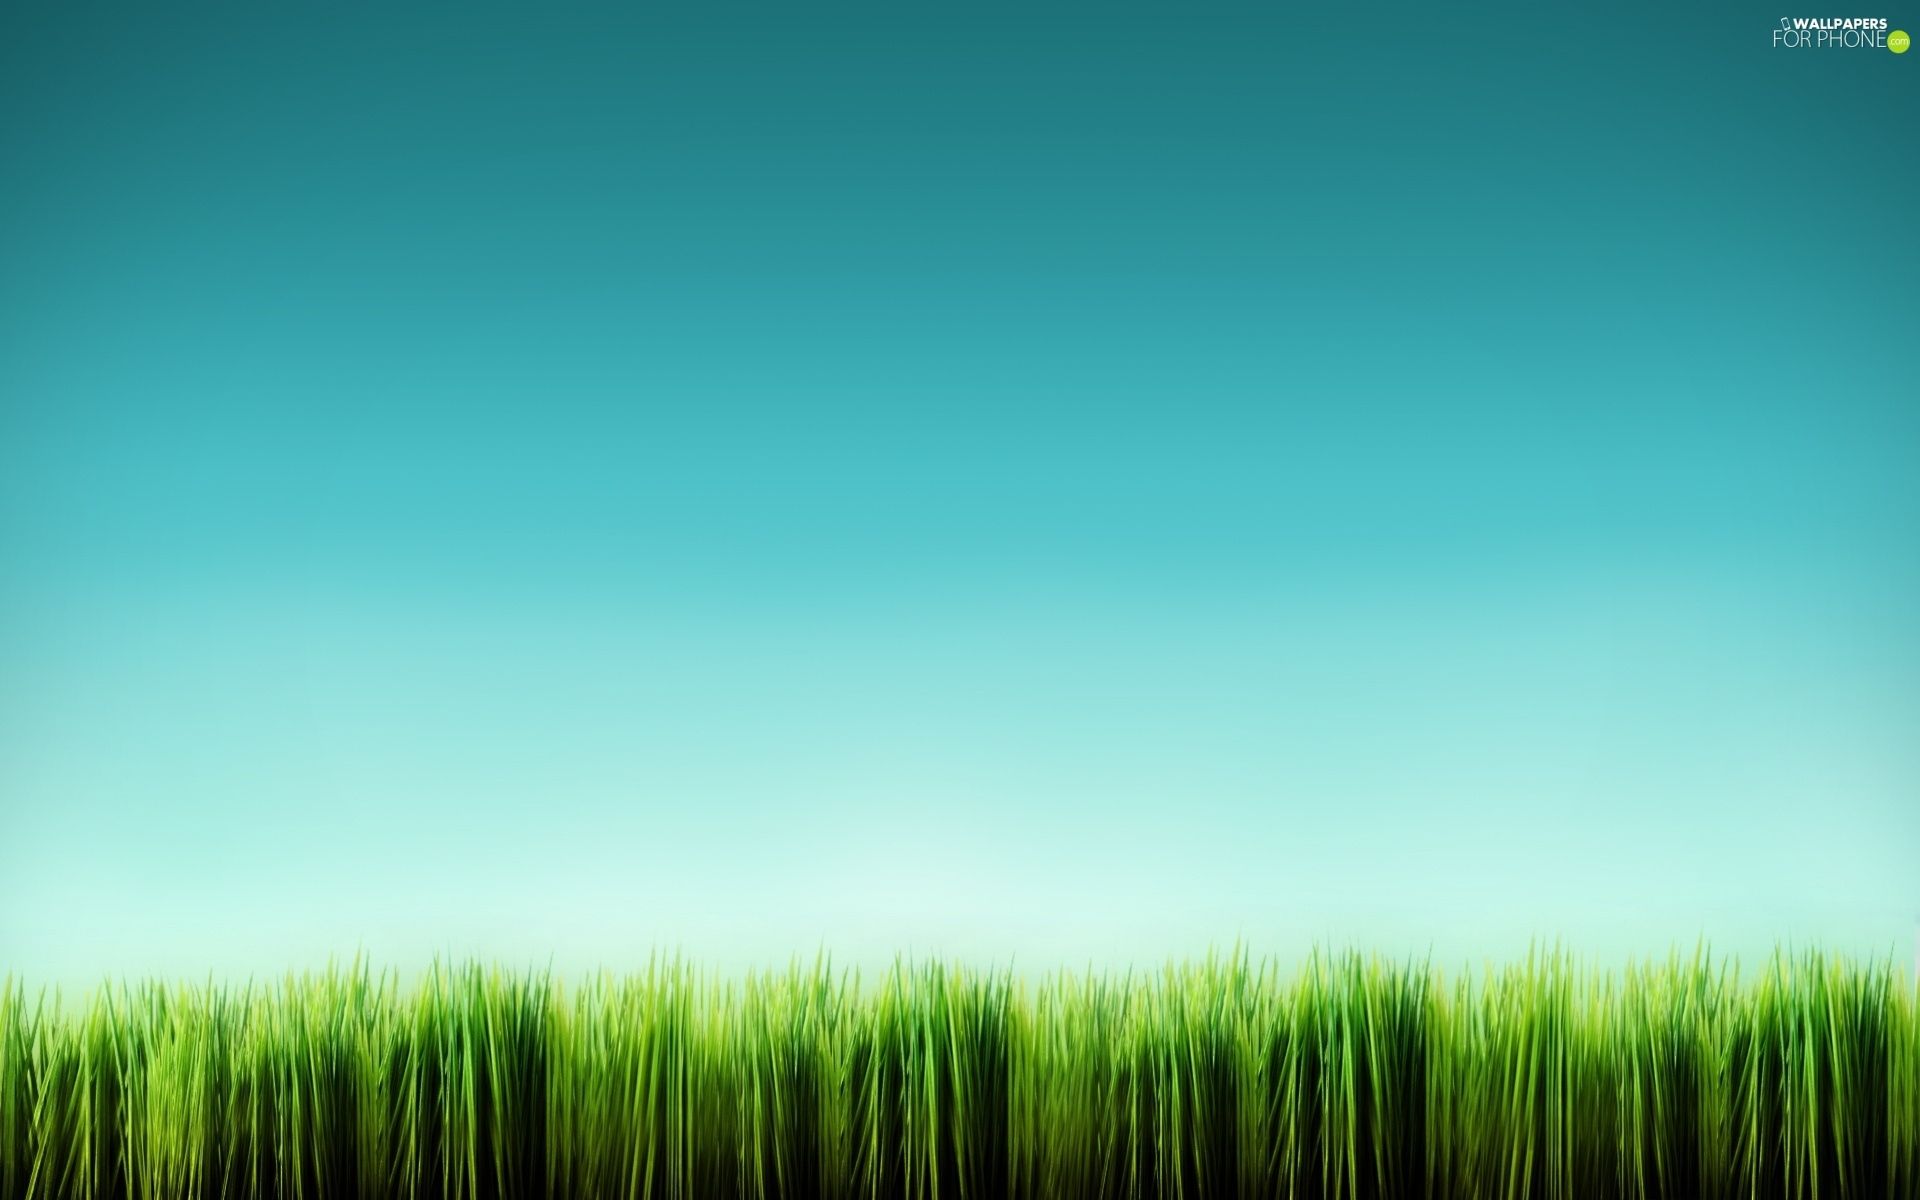 grass, Green, equal